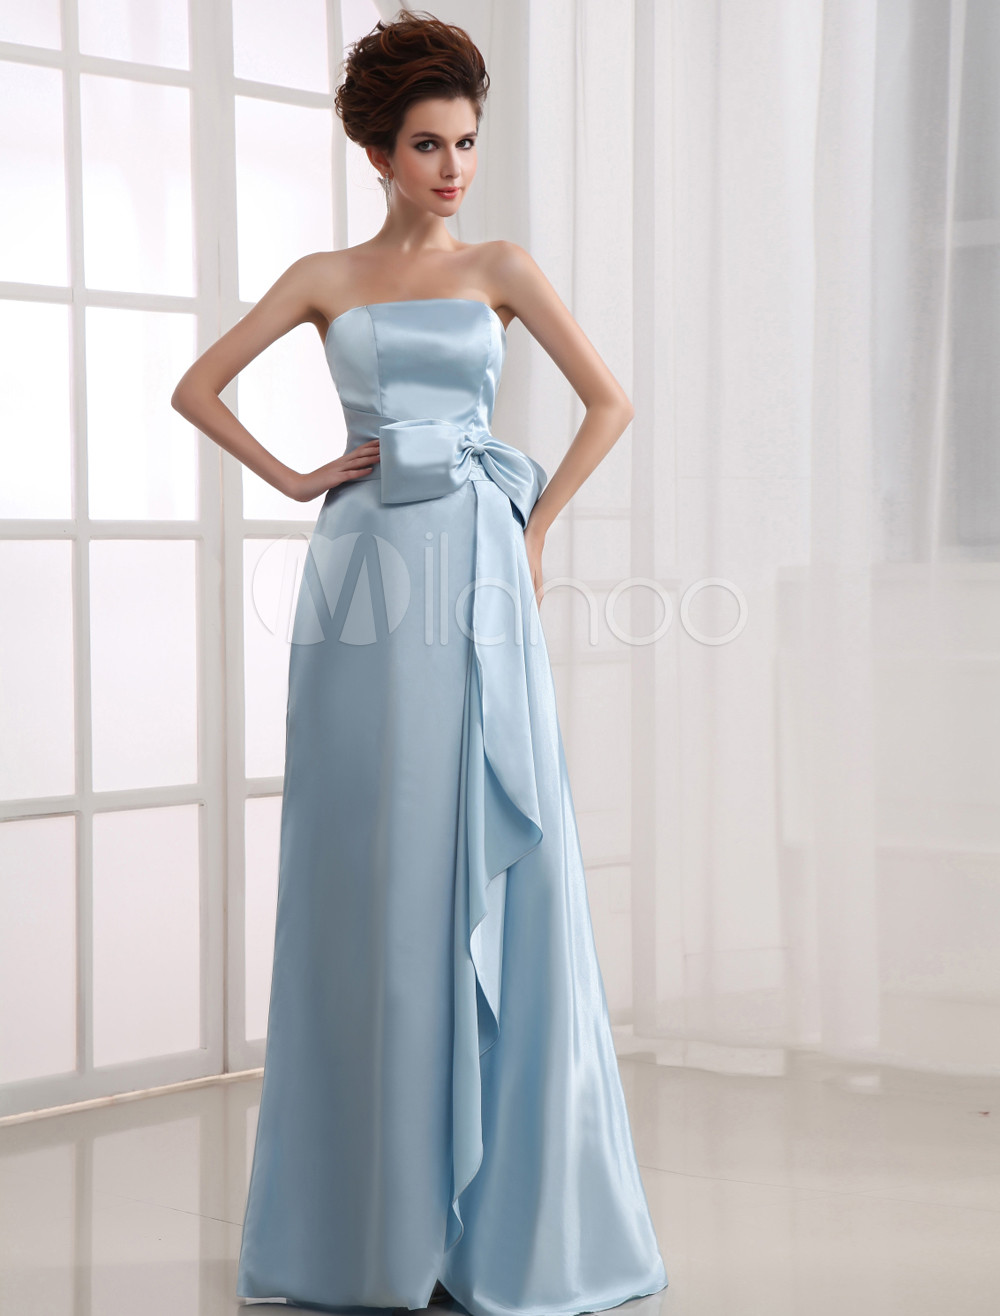 Fresh Strapless Sash Satin Bridesmaid Dress